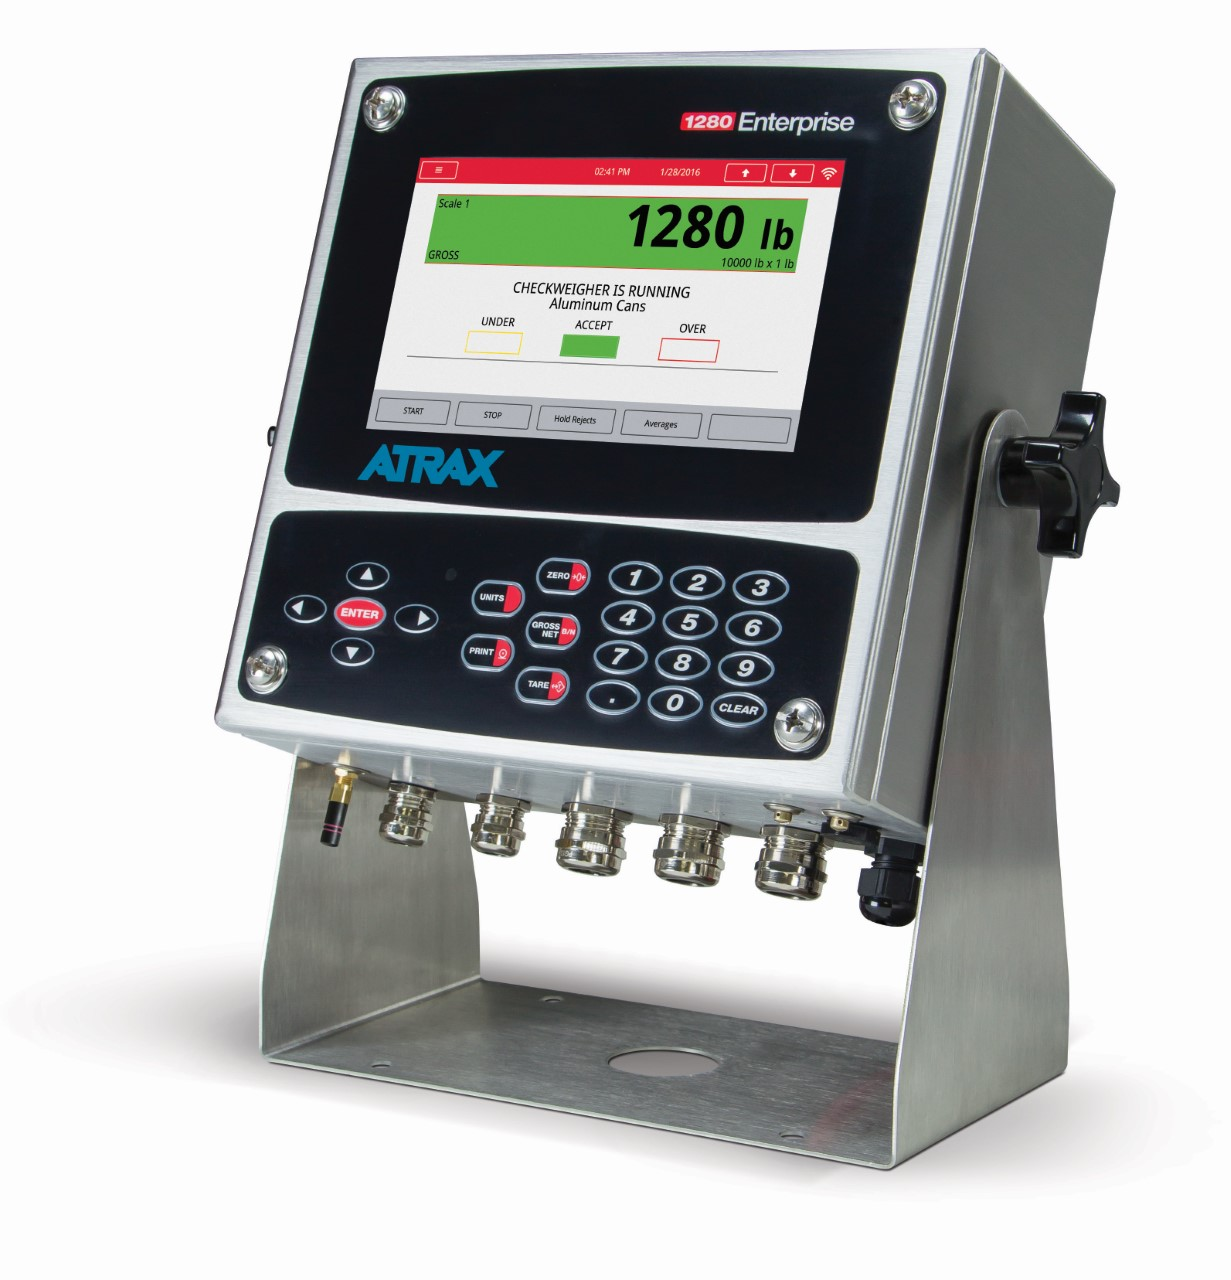 Atrax-1280-Digital-Weight-Indicator